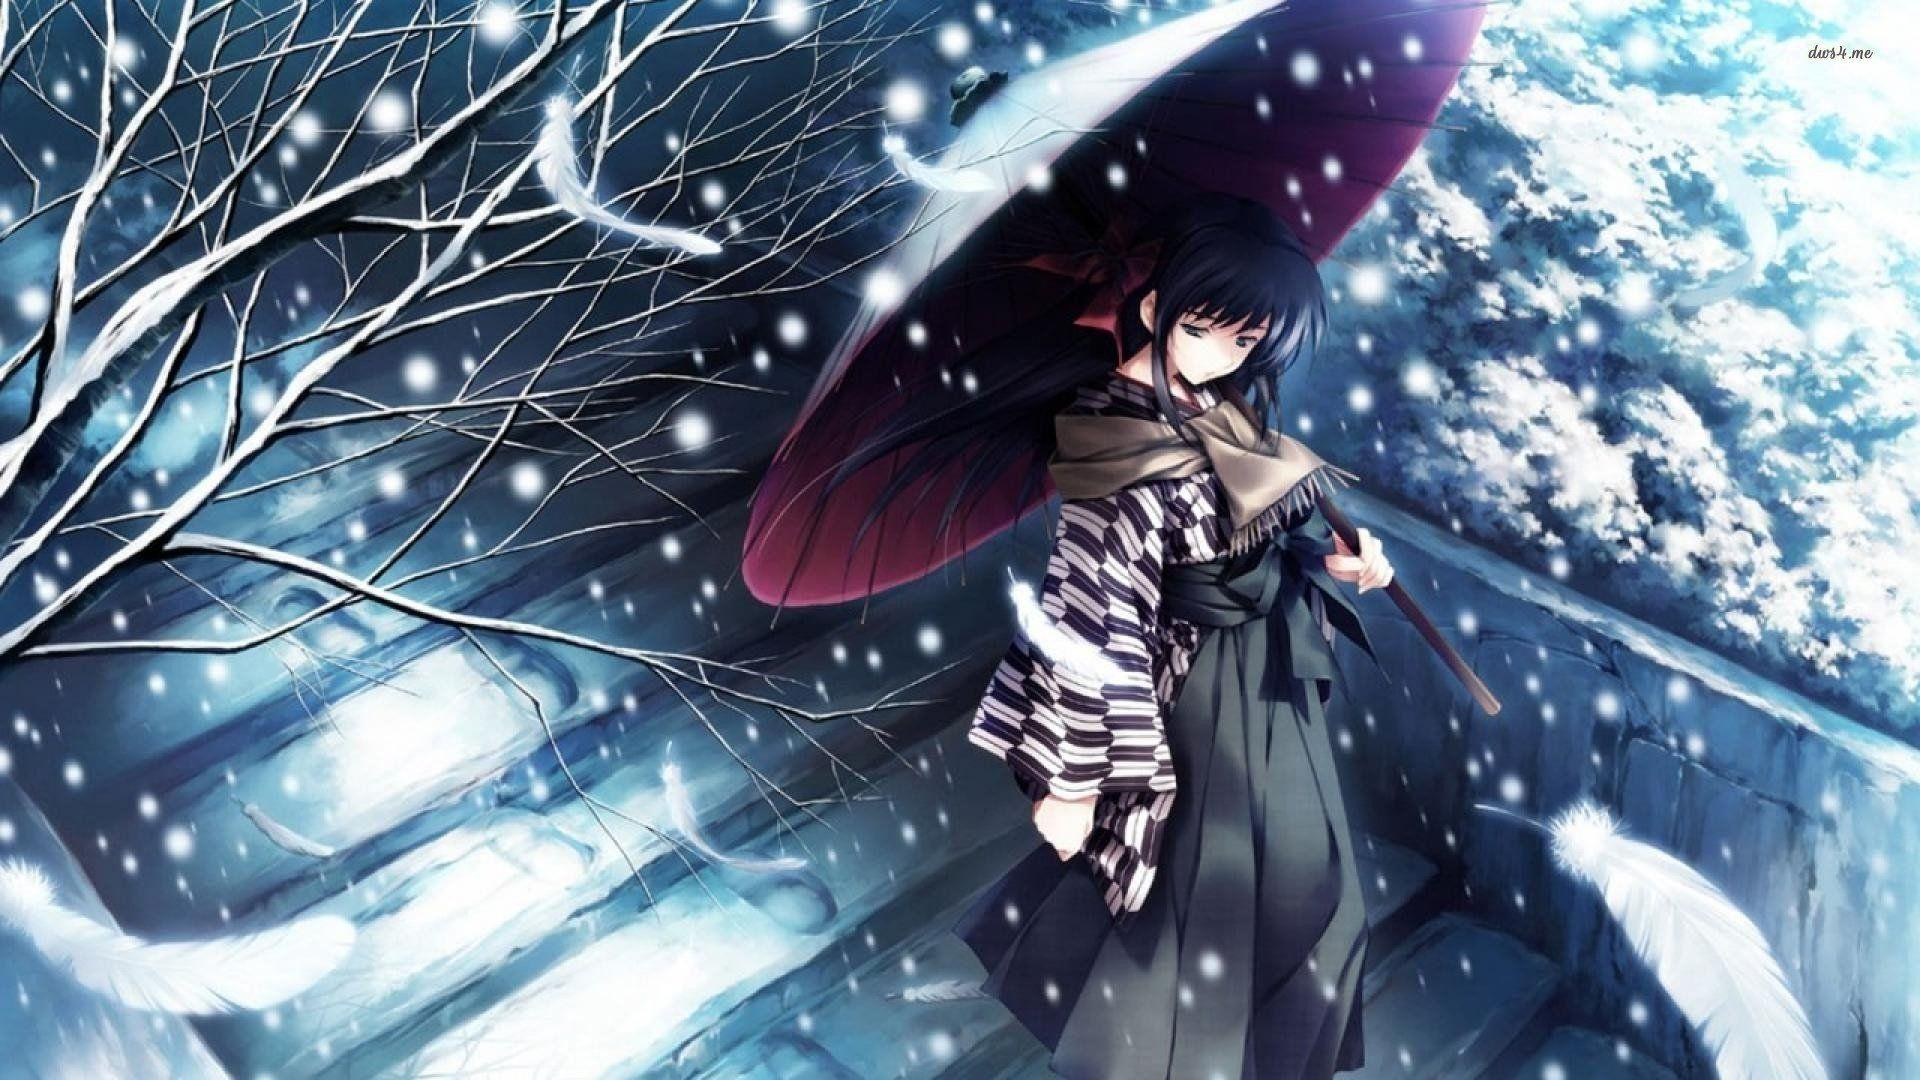 Wallpaper Background Anime Love : Sad Anime Wallpapers - Wallpaper cave